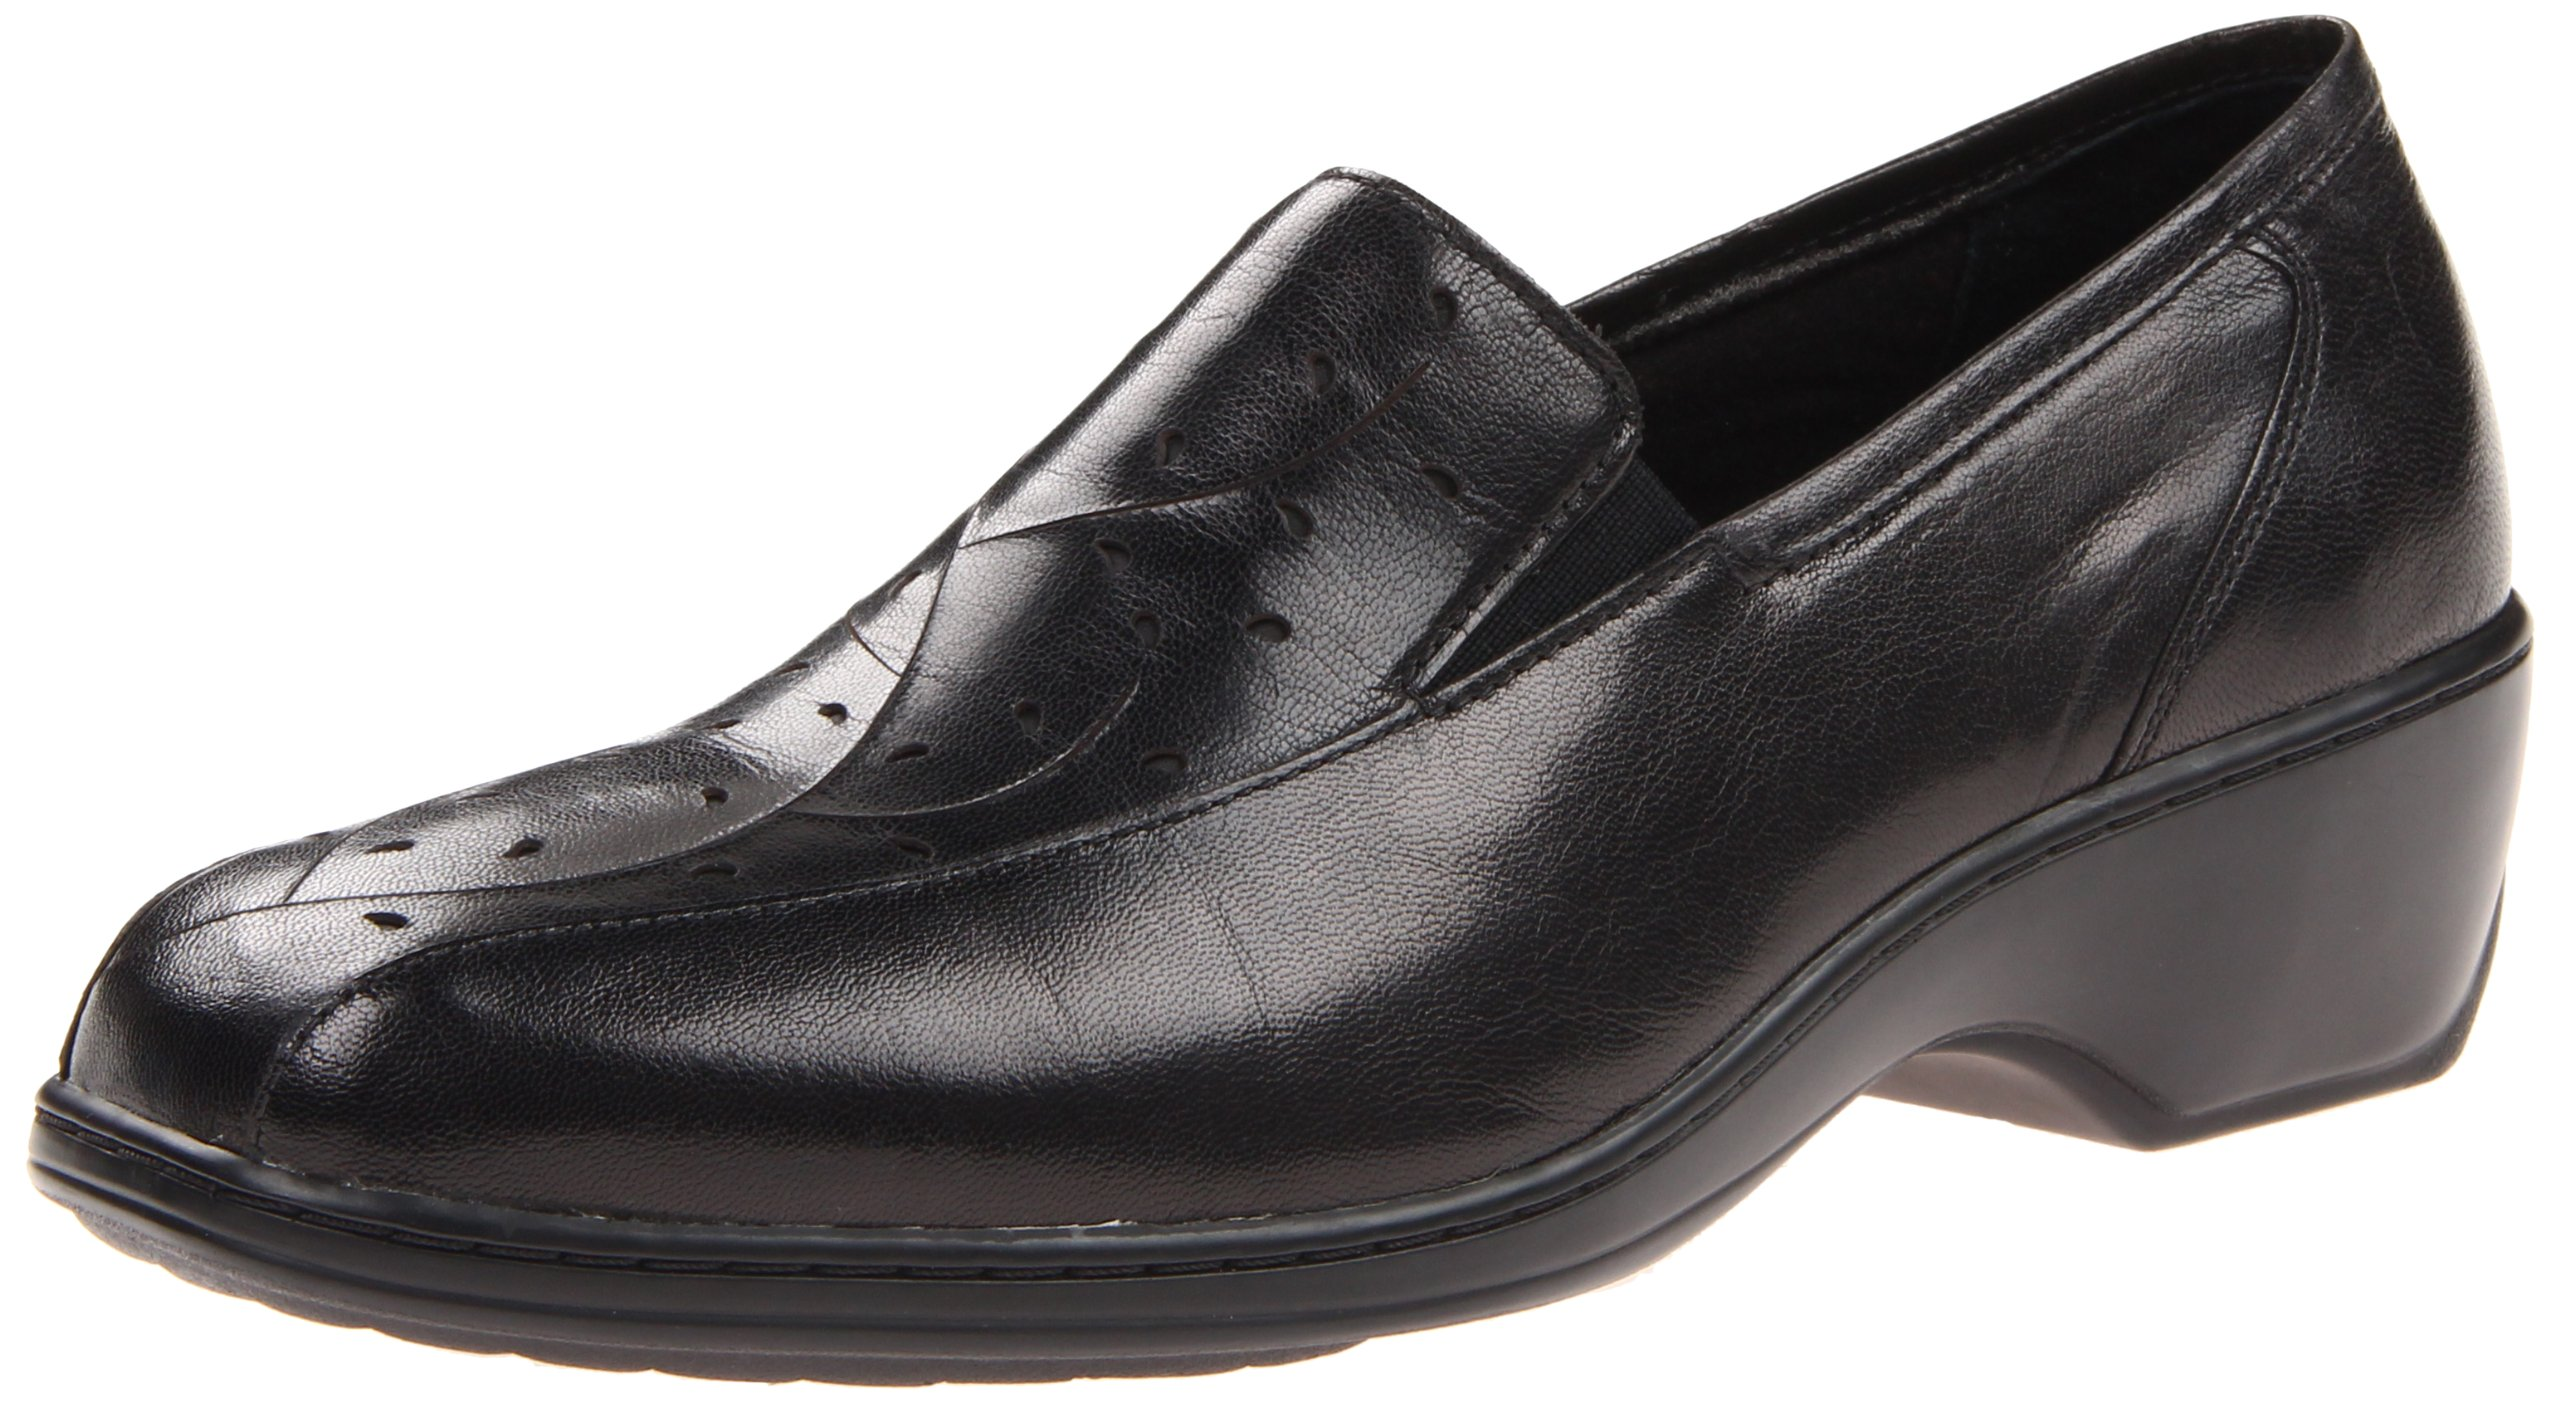 Aravon Women's Kiley Flat, Black, 6.5 B US by Aravon